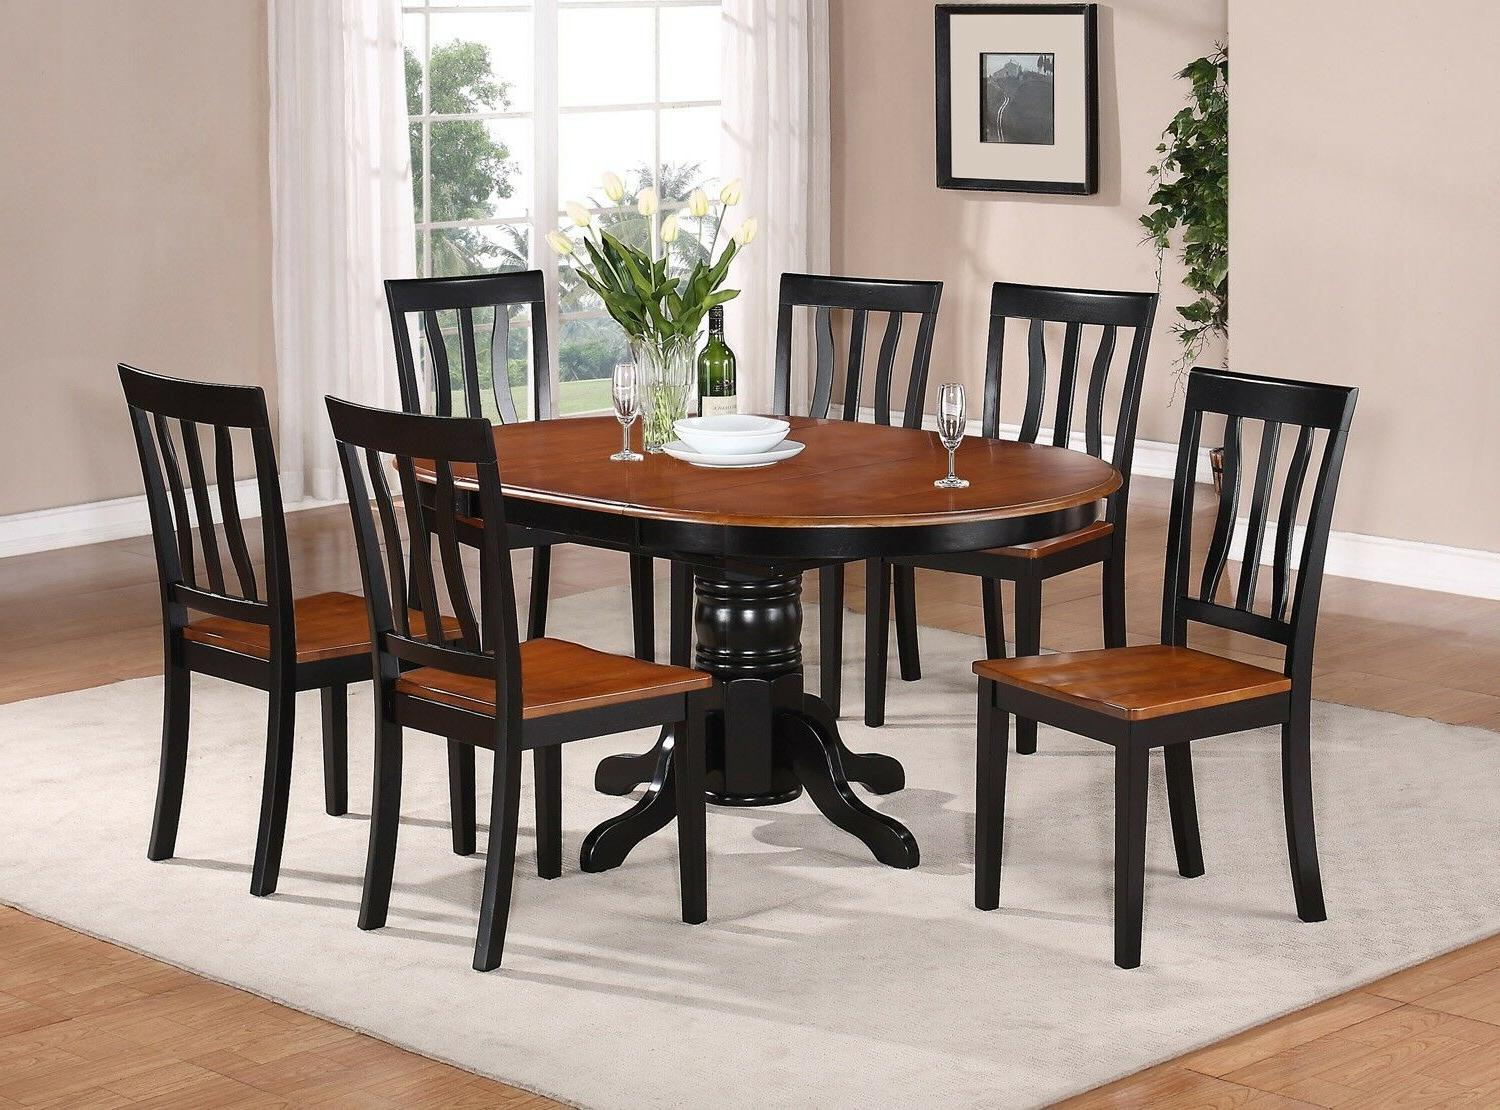 East West Furniture AVAT7-BLK-W 7-Piece Dining Table Set Bra